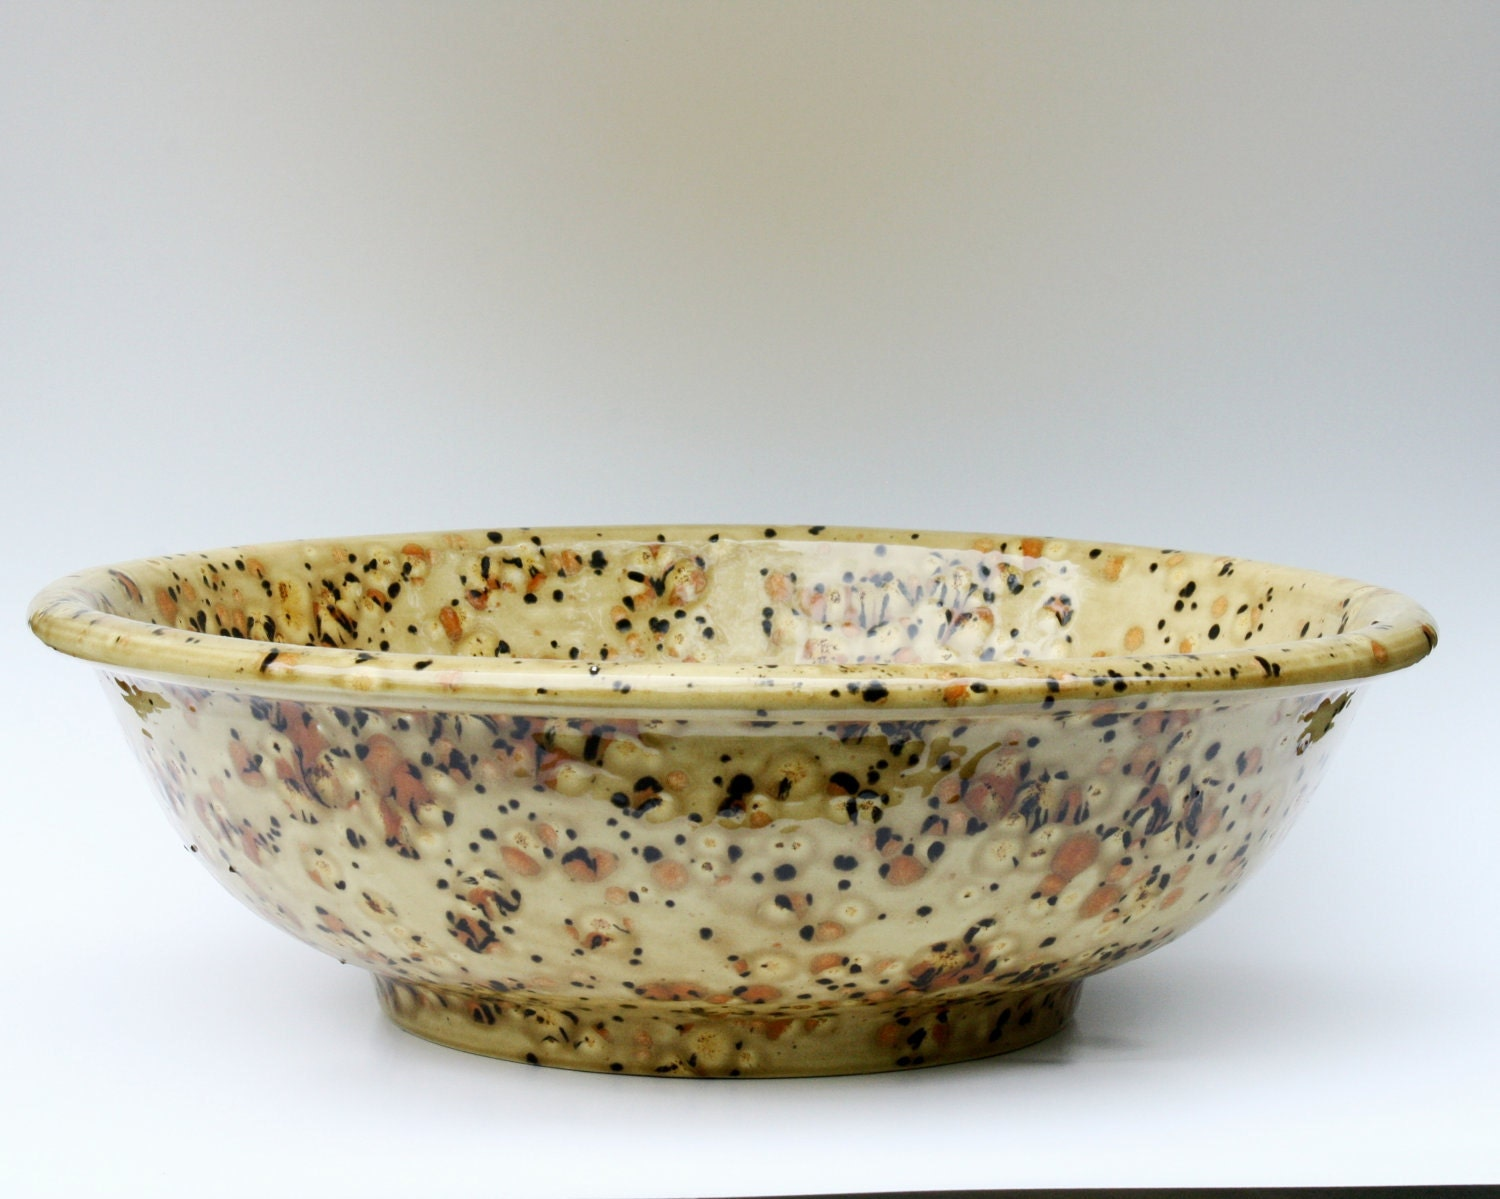 Large Serving Bowl in Golden Brown and Rust - miasorellagifts